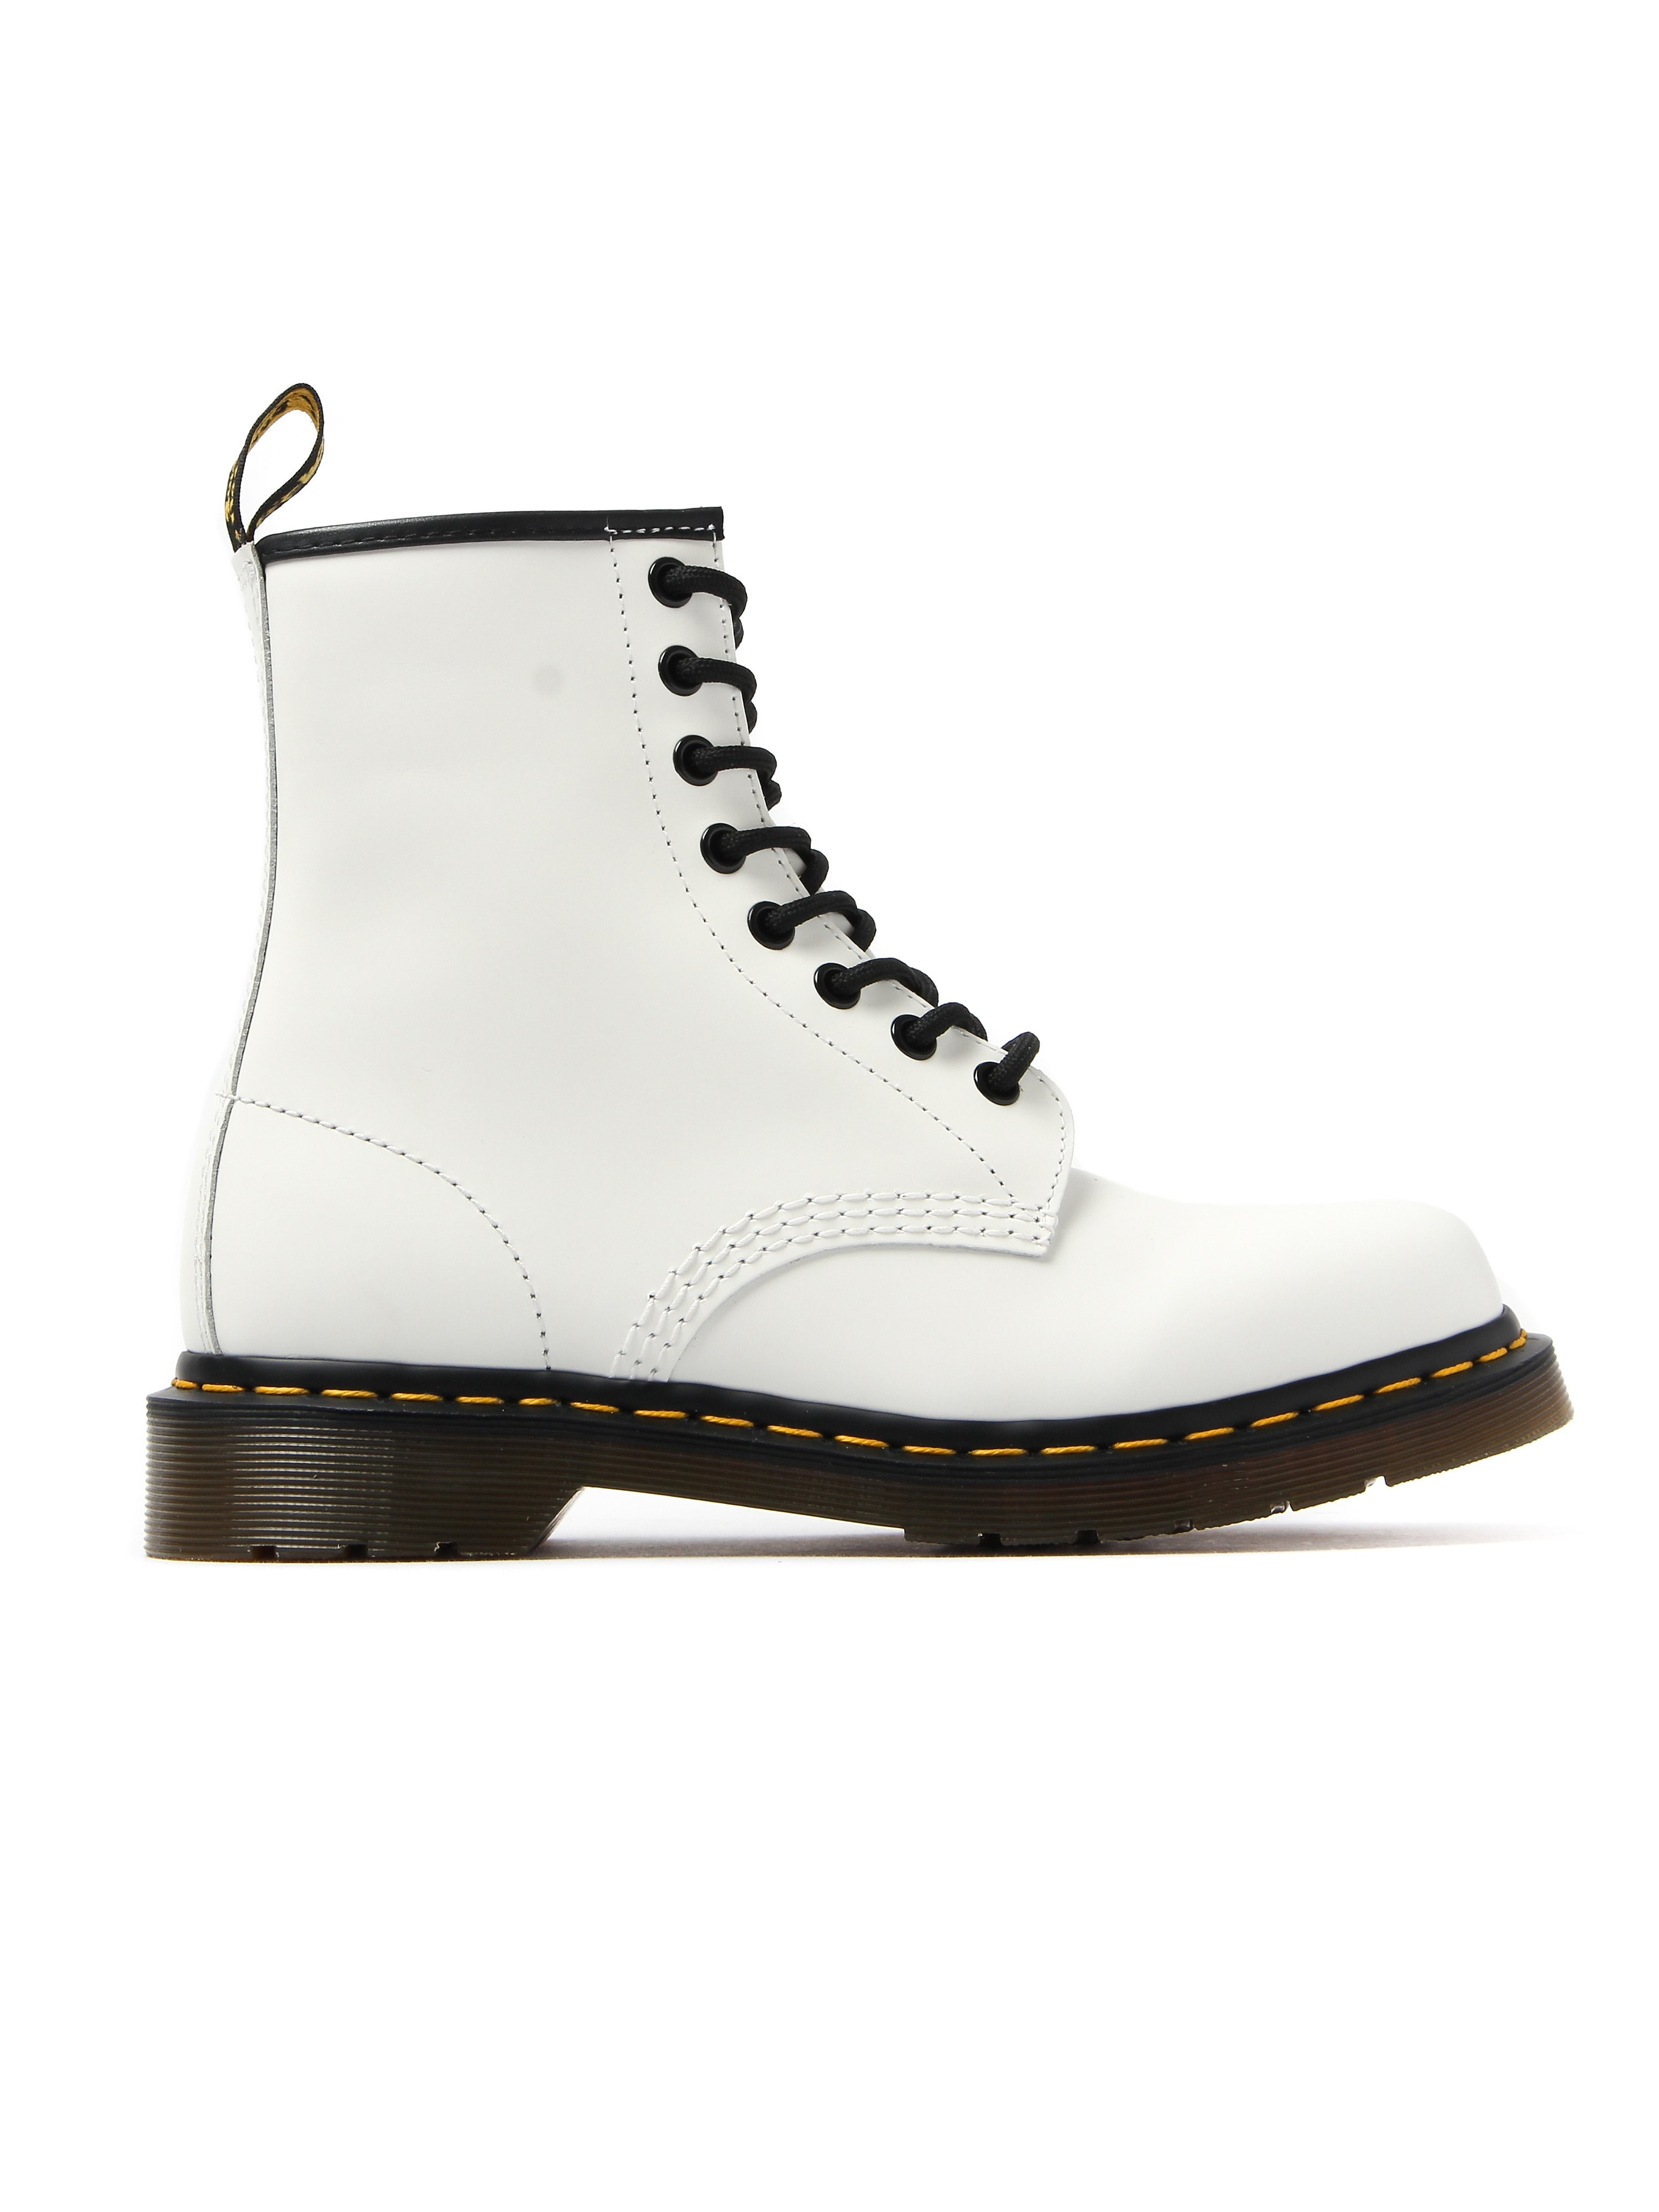 Dr Martens Women's 8 Eyelet 1460 Smooth Leather Boot - White